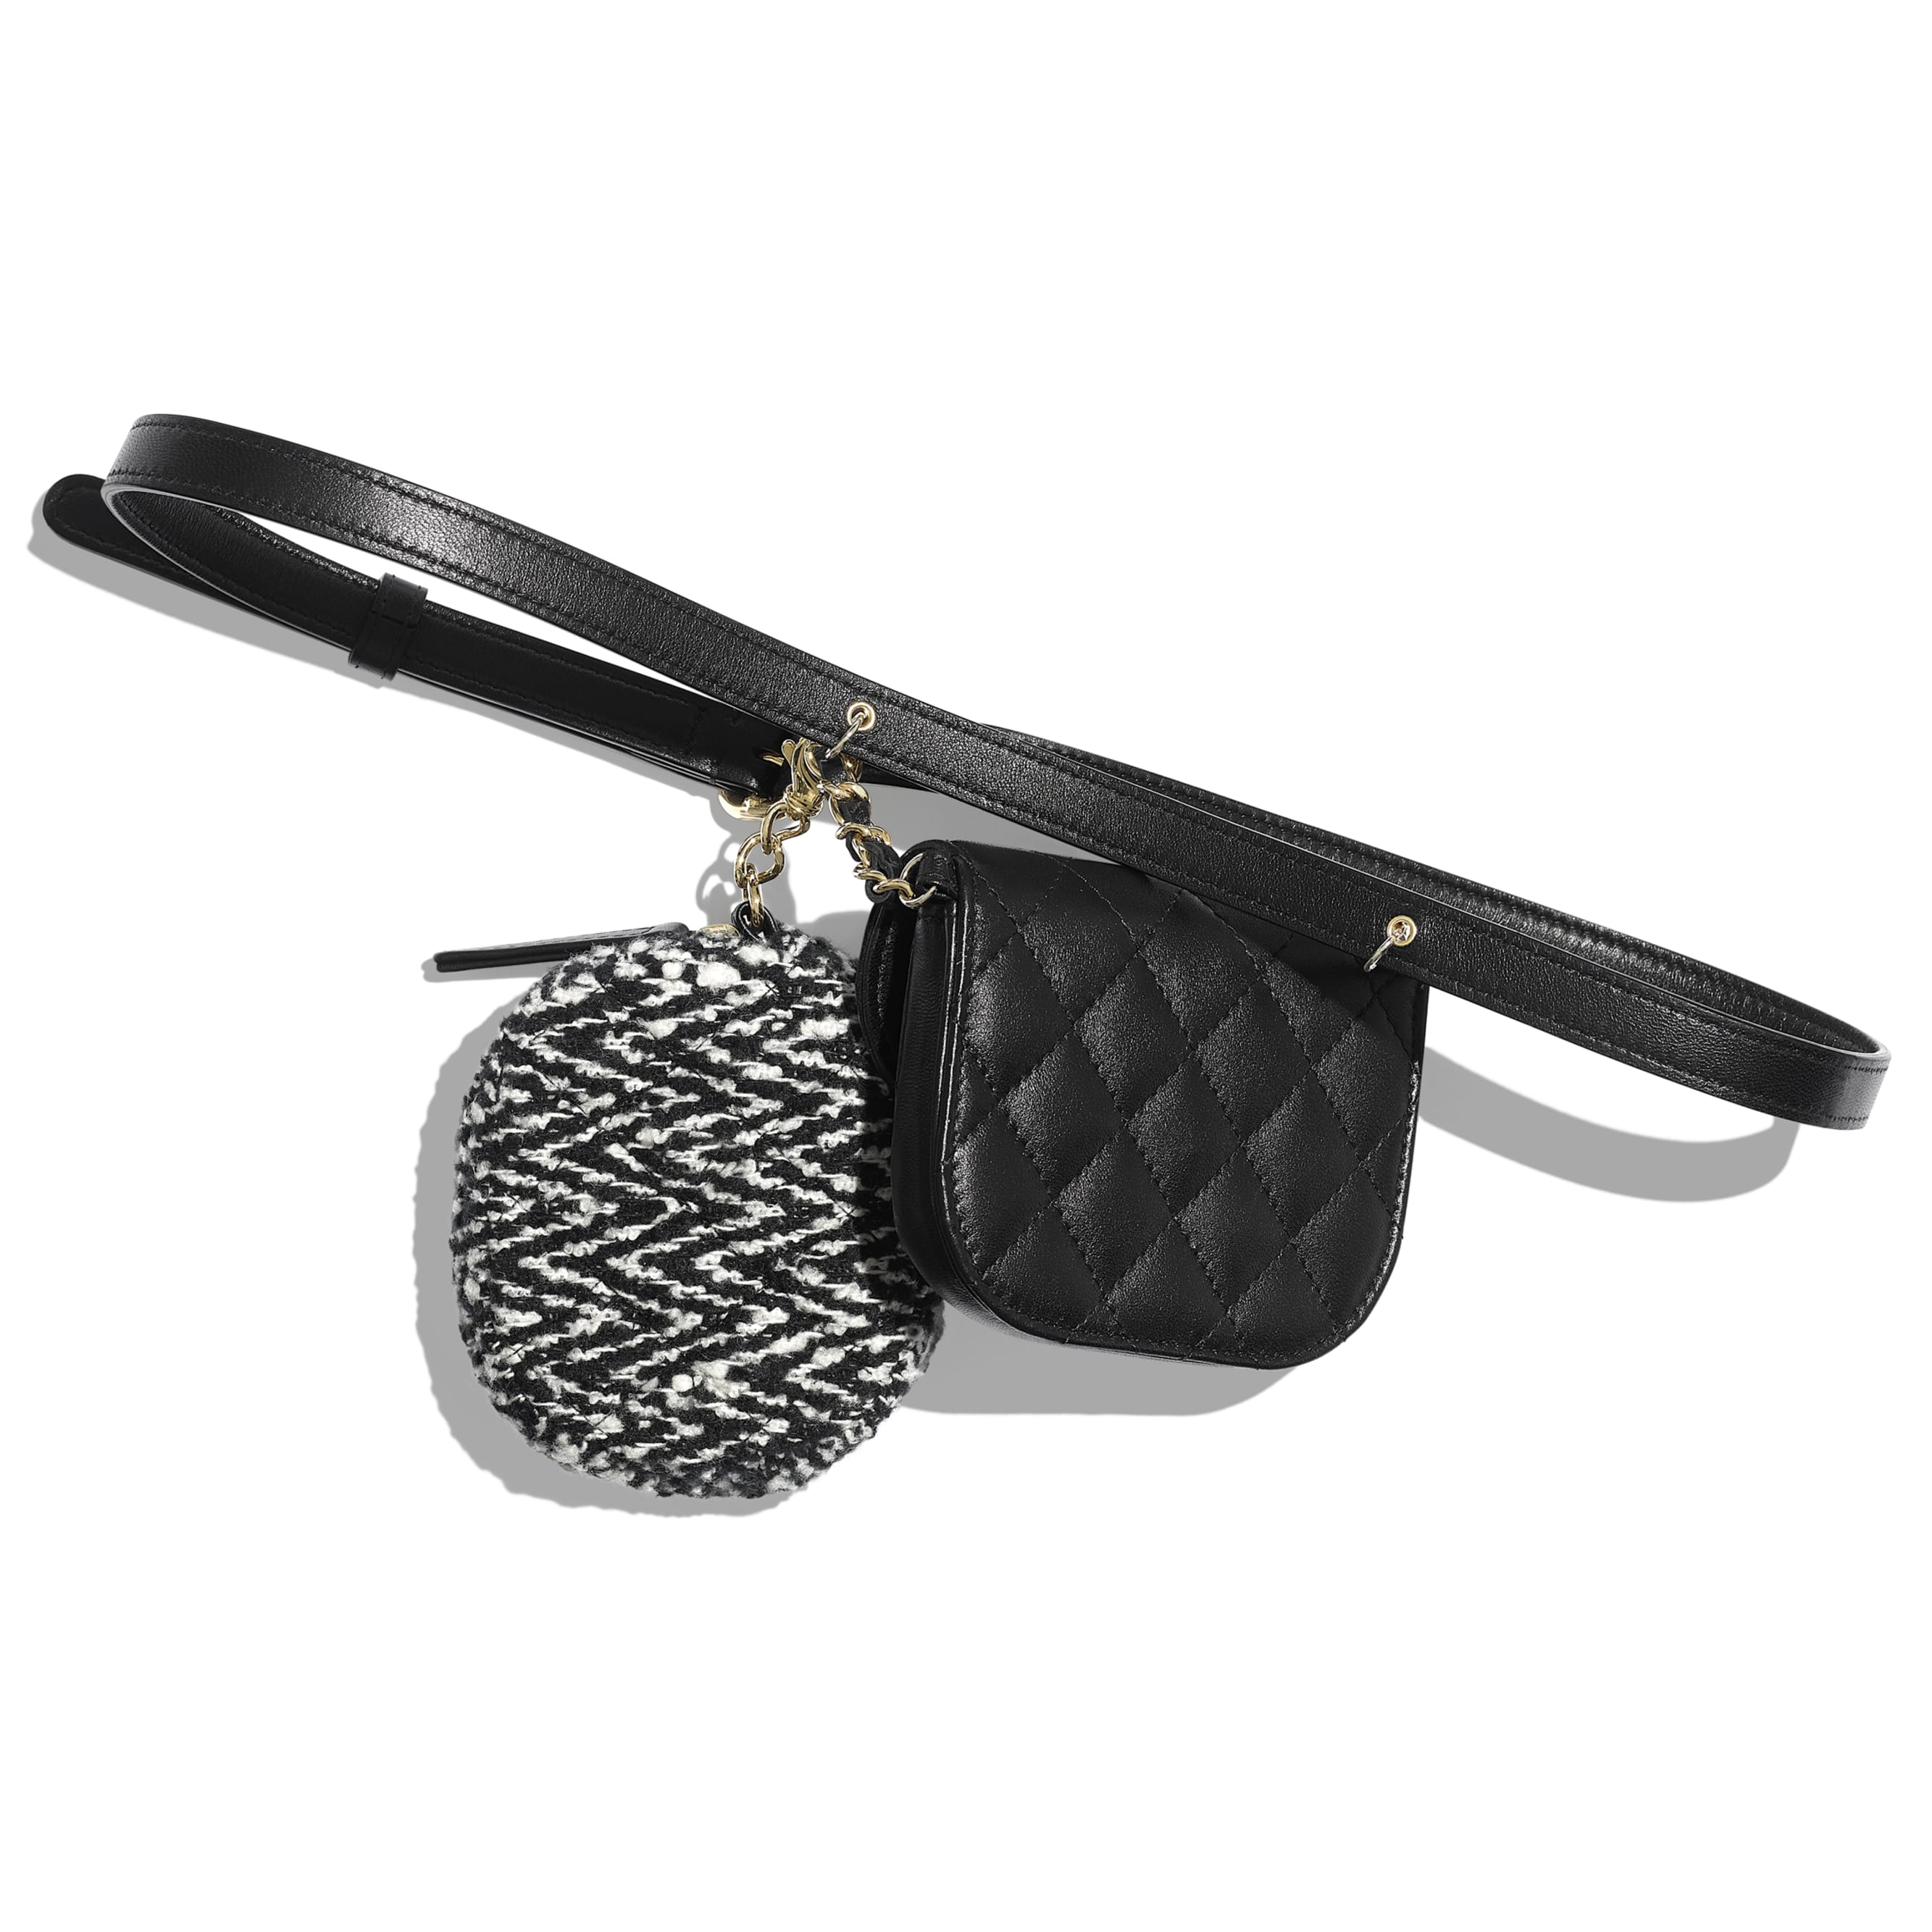 Waist Bag & Coin Purse - Black & White - Lambskin, Tweed & Gold-Tone Metal - Alternative view - see standard sized version